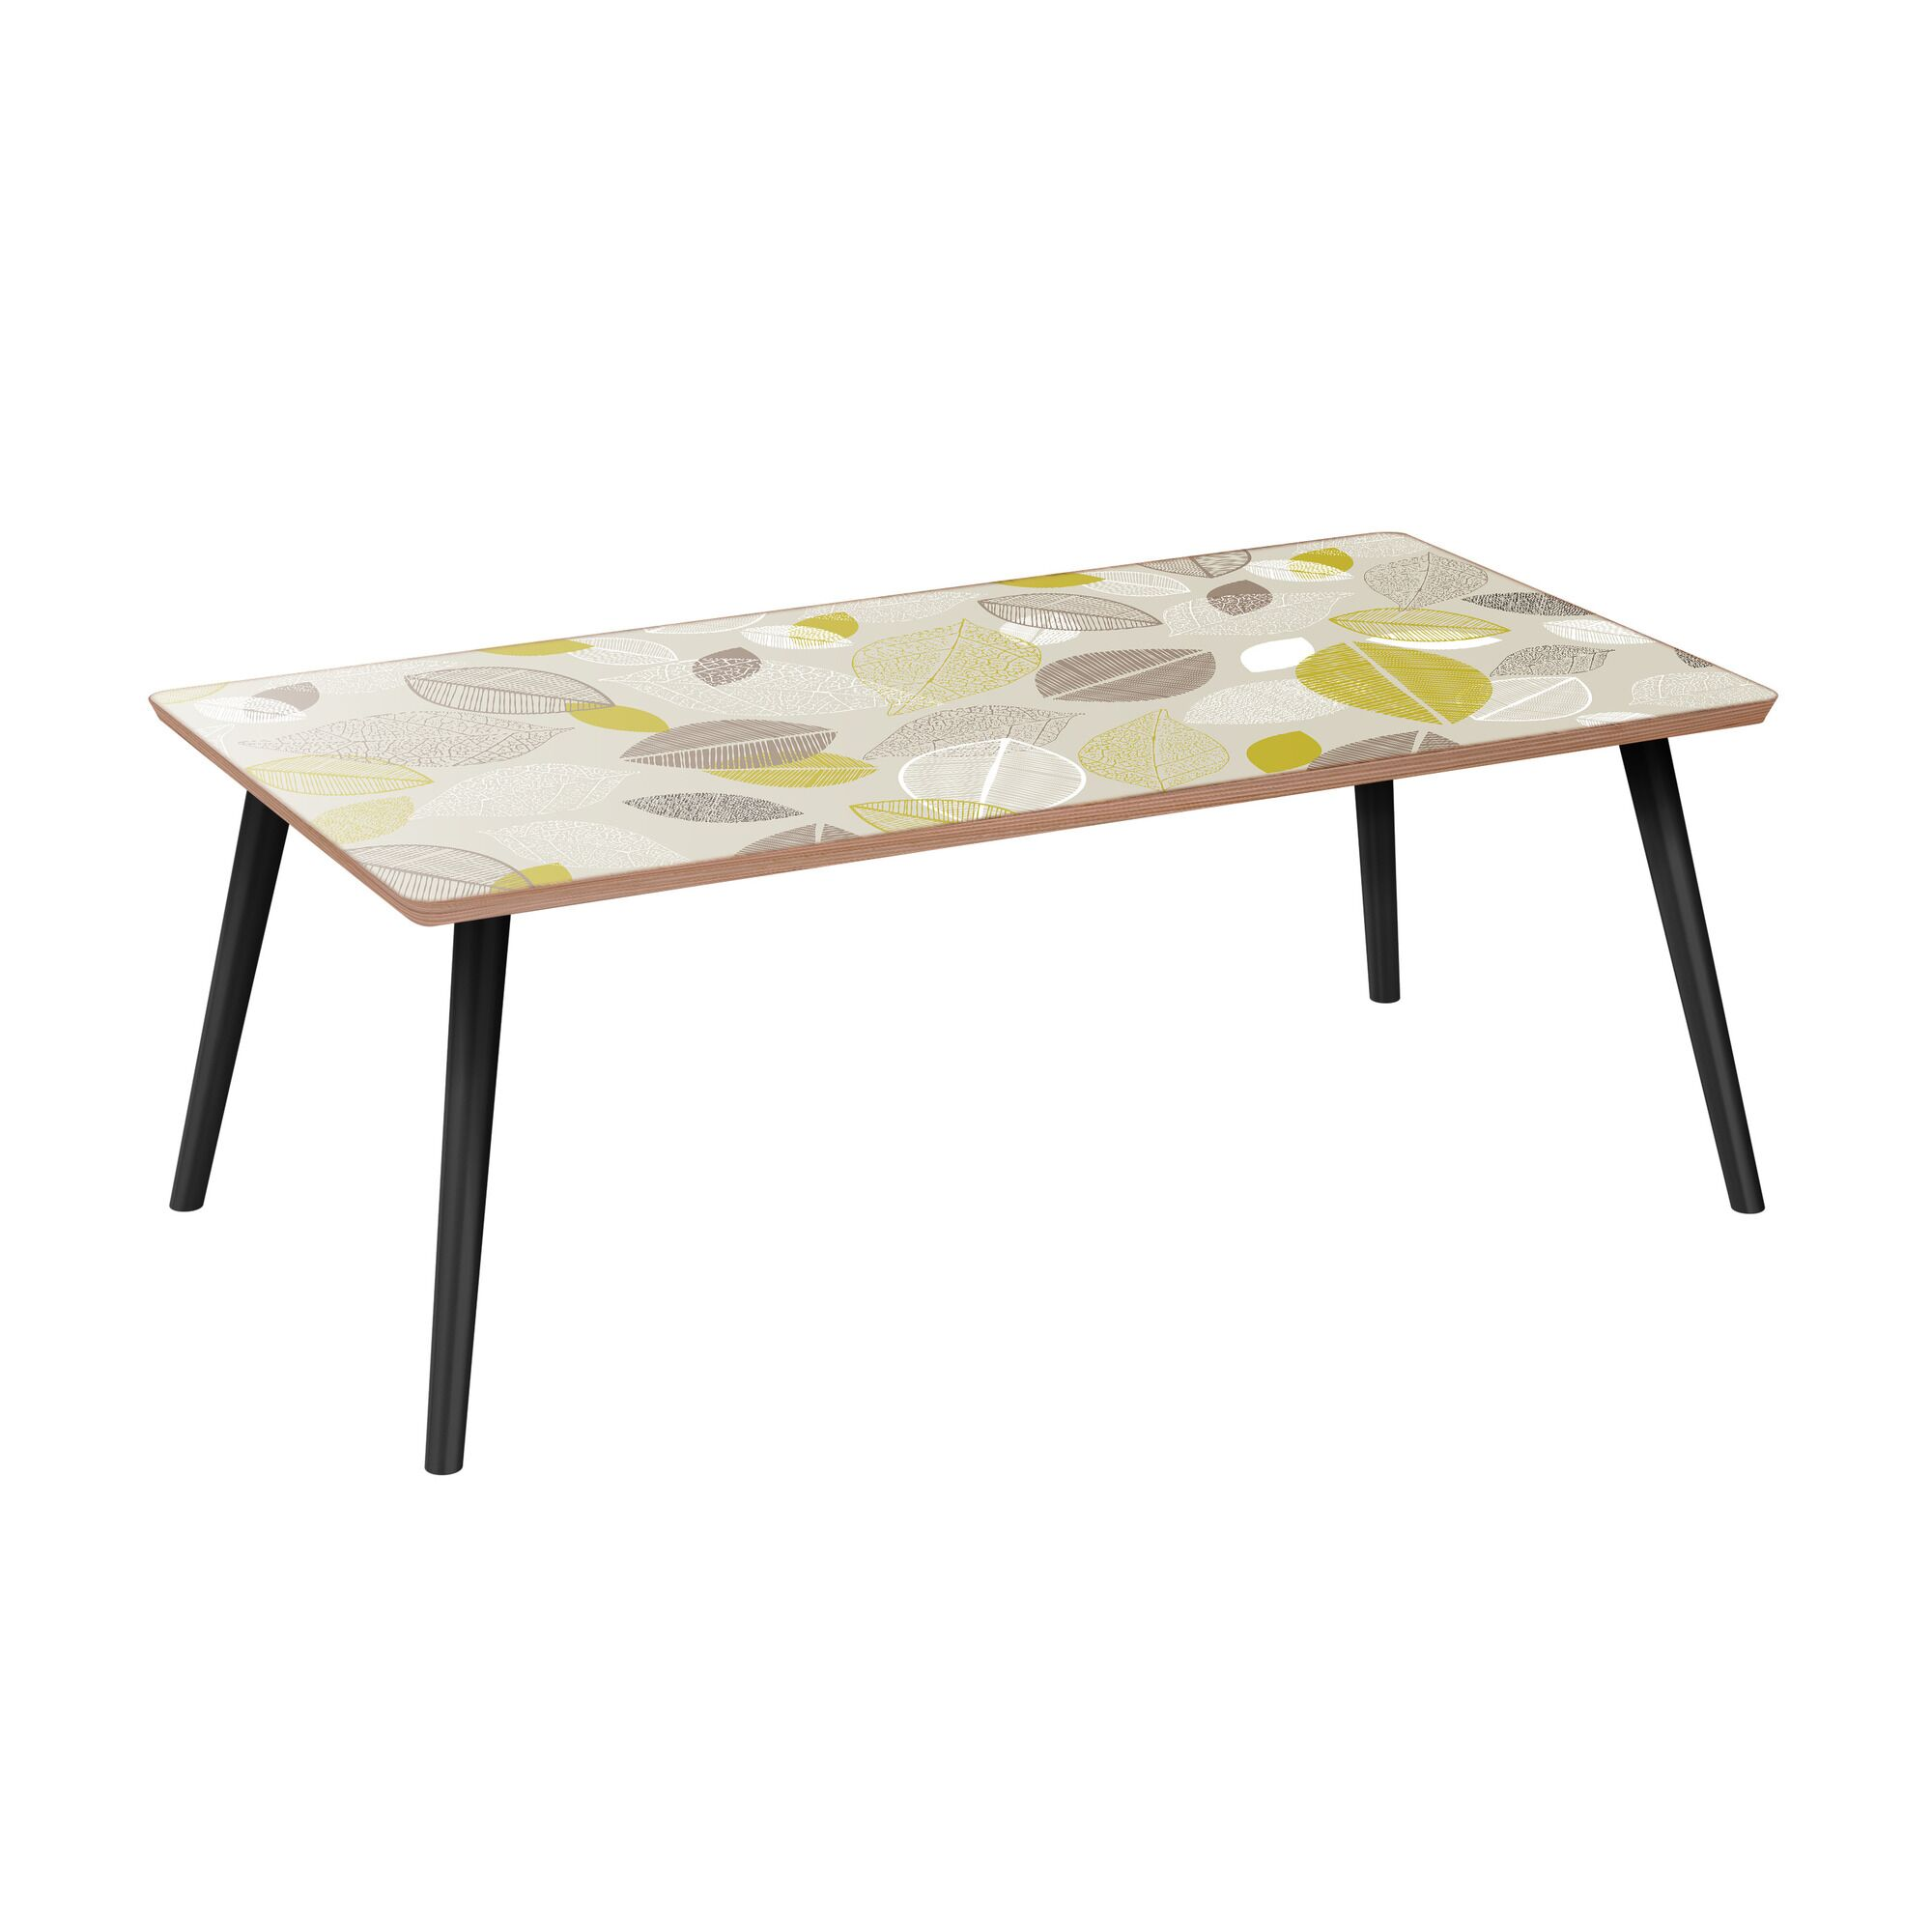 Richart Coffee Table Table Base Color: Black, Table Top Boarder Color: Walnut, Table Top Color: Green/Brown